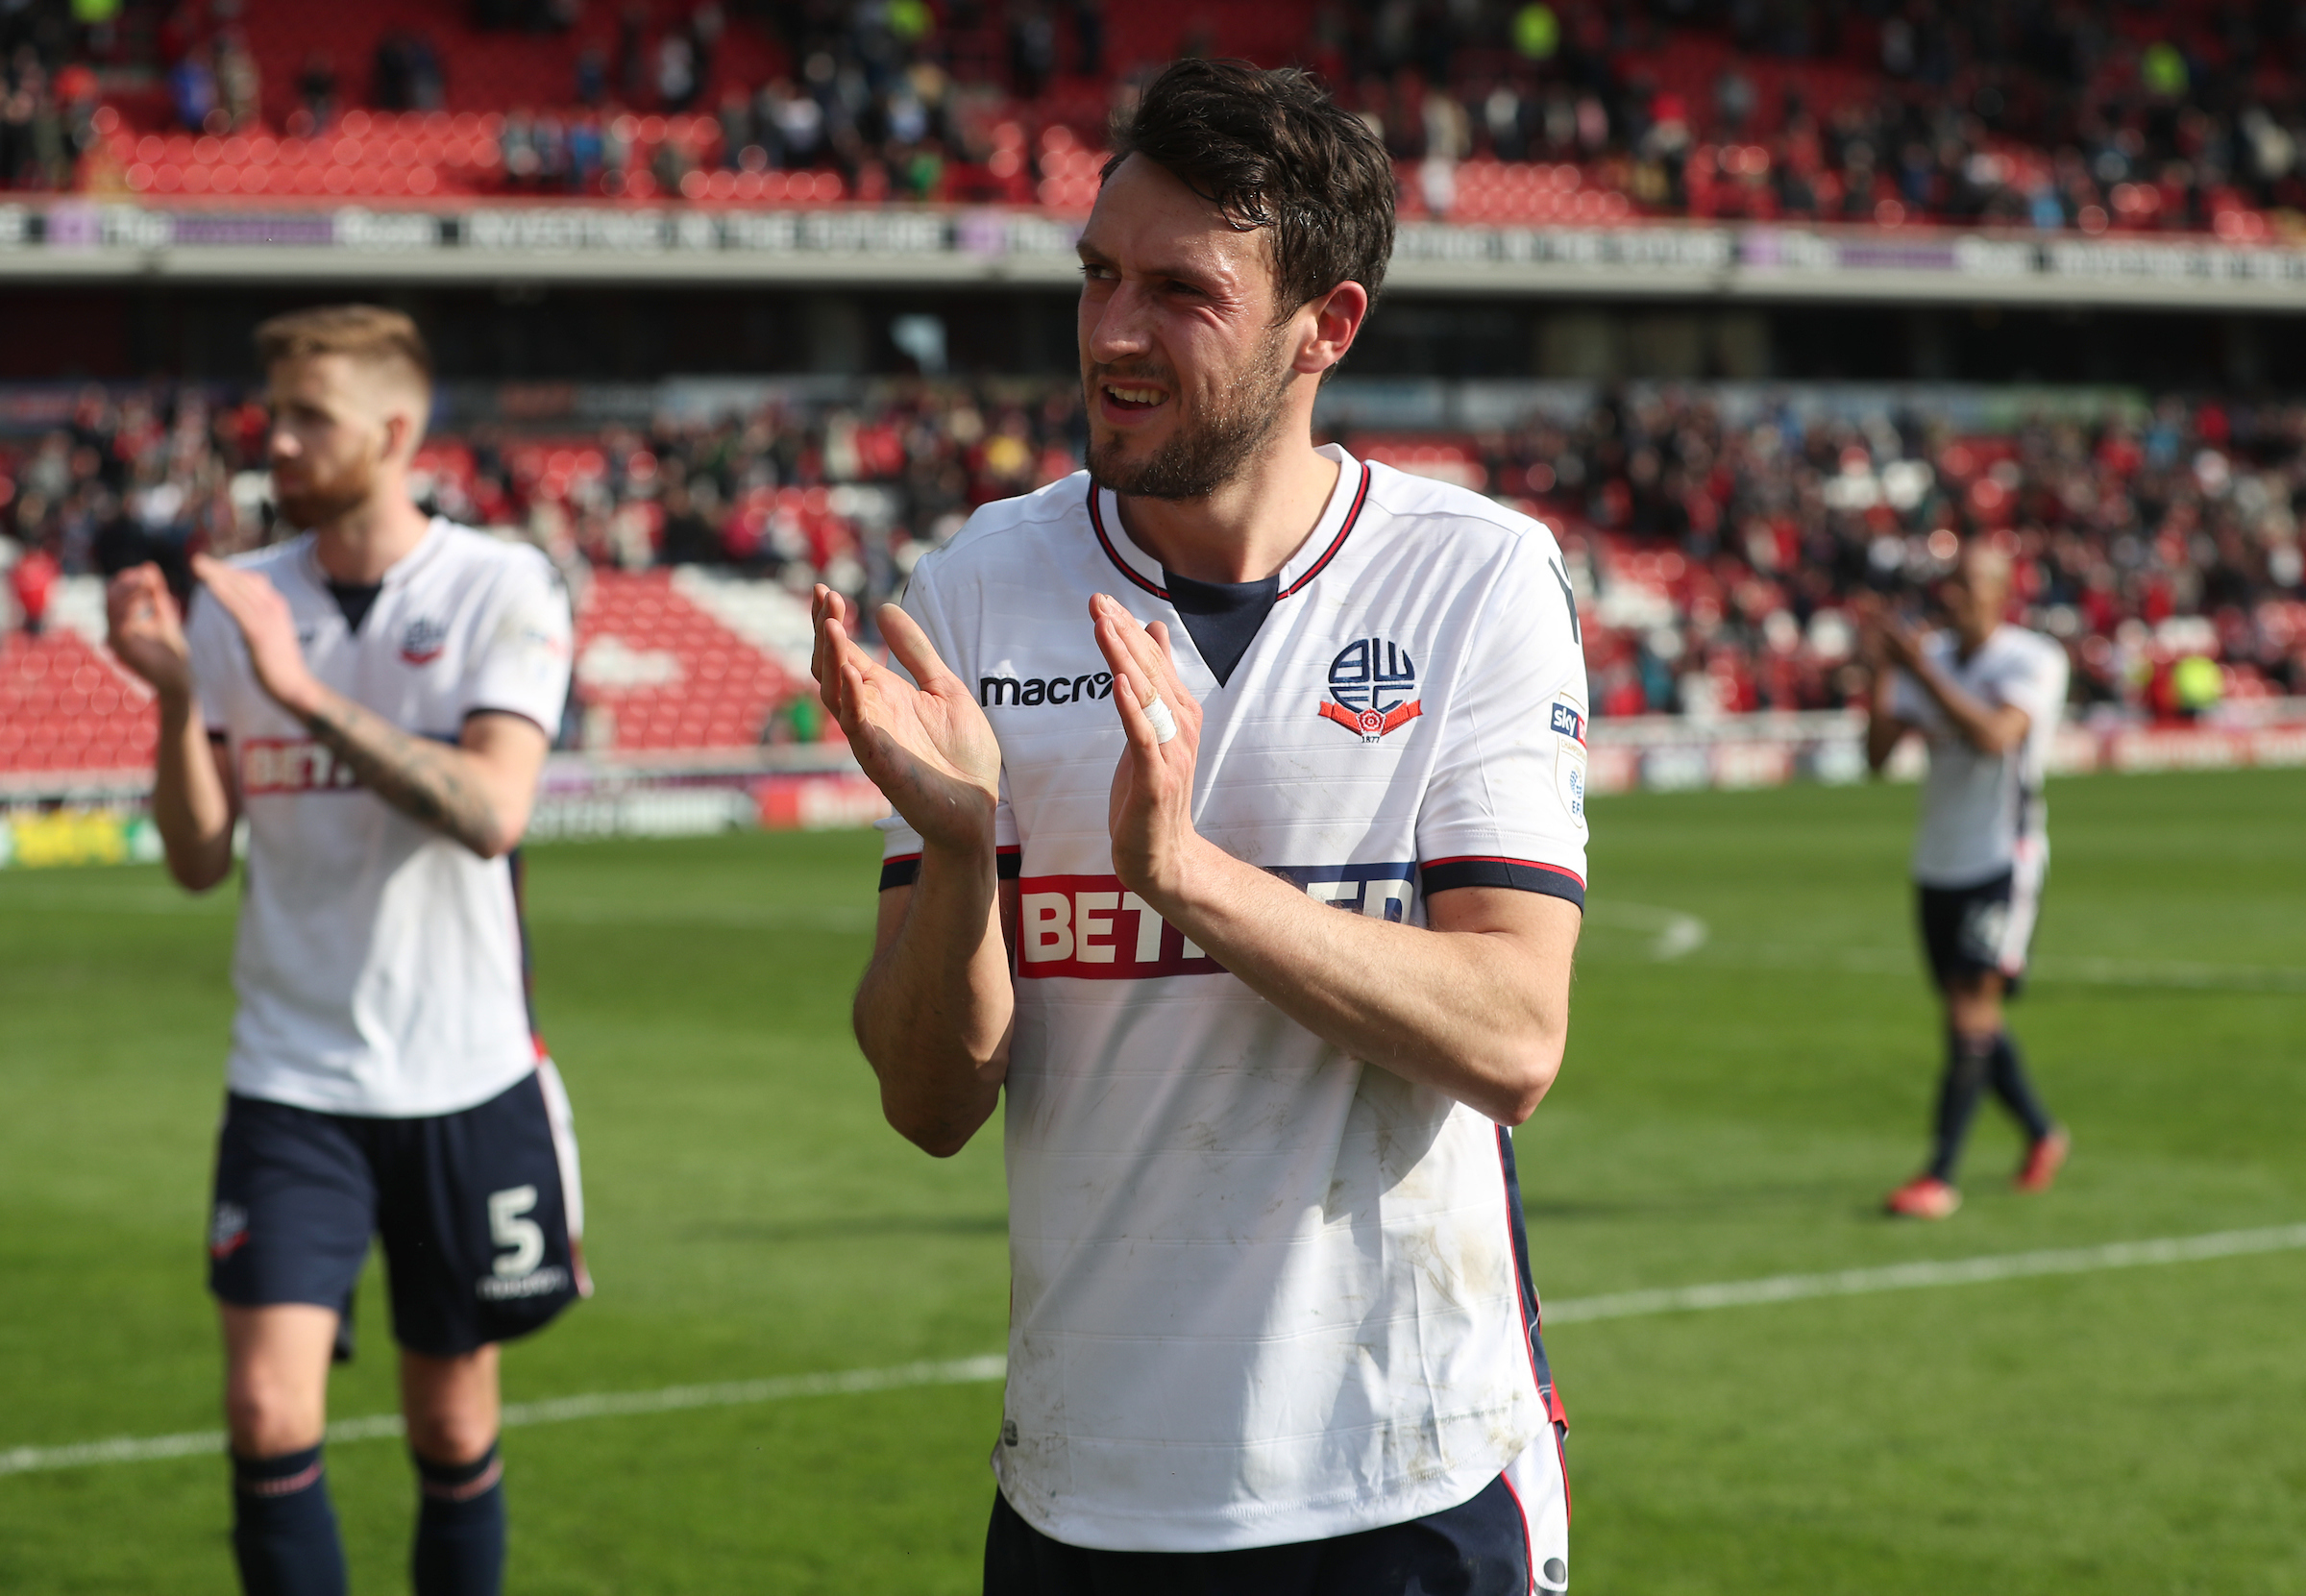 GIVE HIM A HAND: Will Buckley's second-half display at Oakwell was applauded